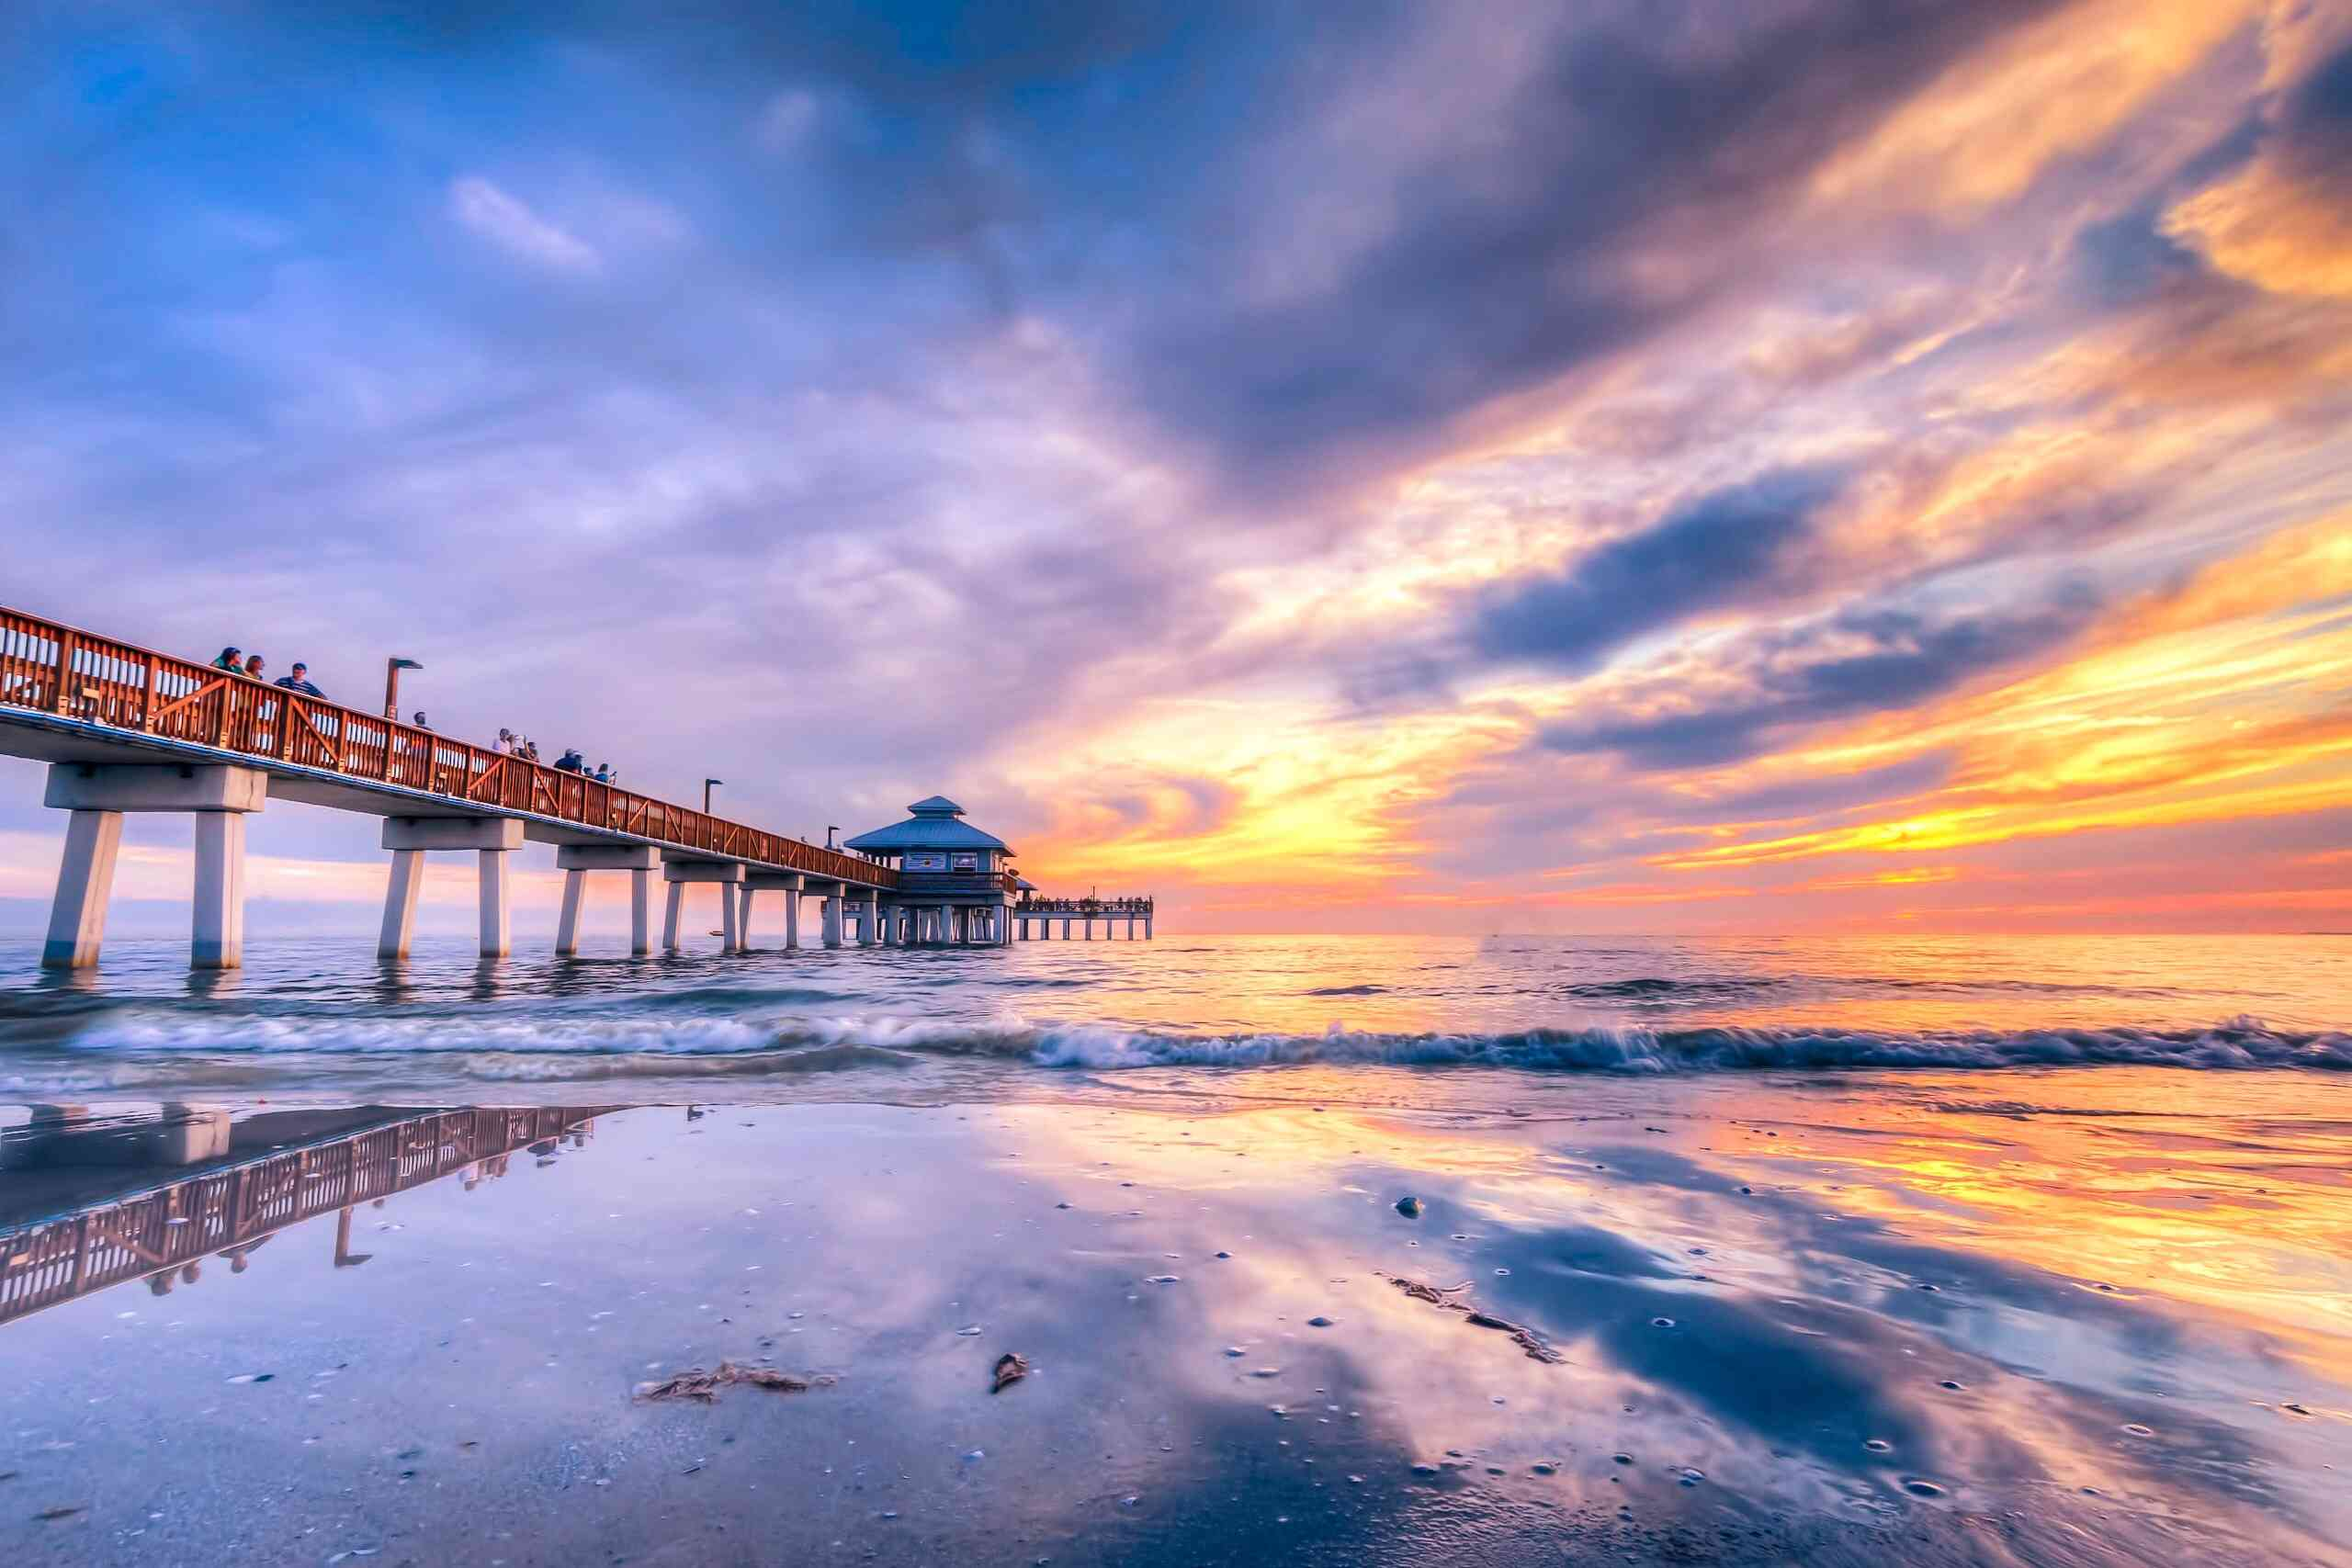 Pier Over Sea Against Sky During Sunset in Fort Myers